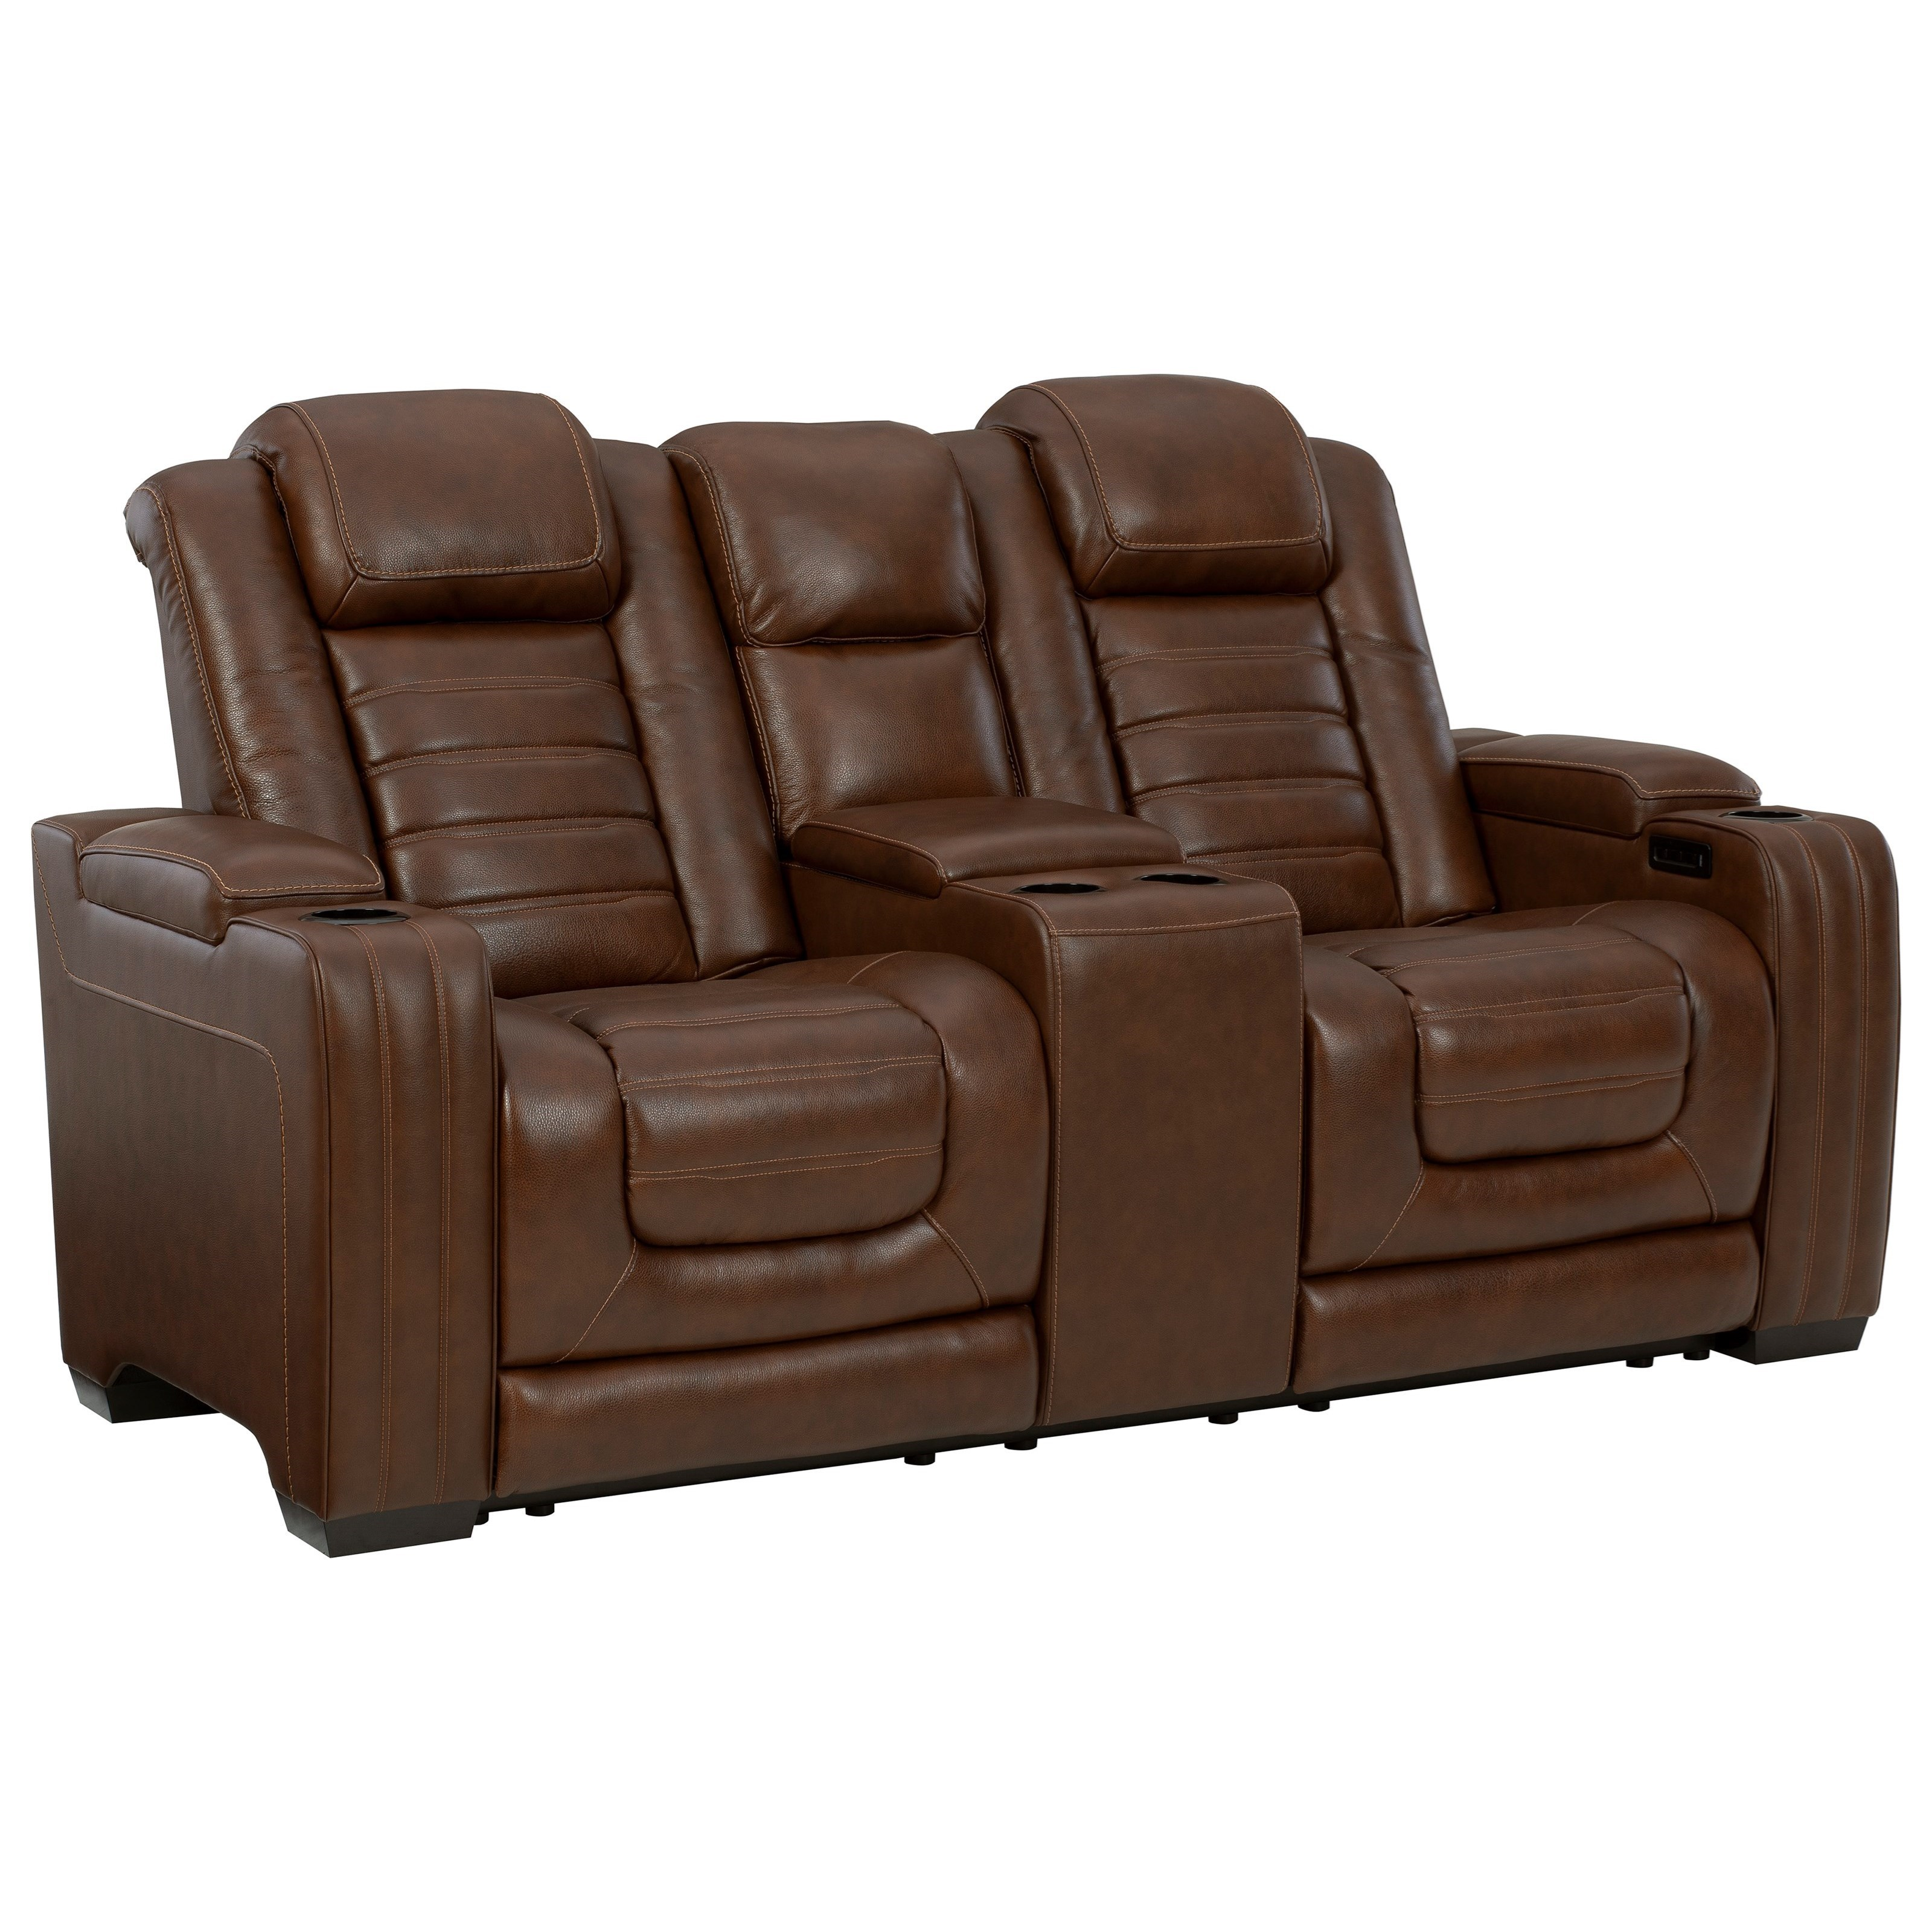 Backtrack Power Reclining Loveseat by Signature Design by Ashley at Northeast Factory Direct